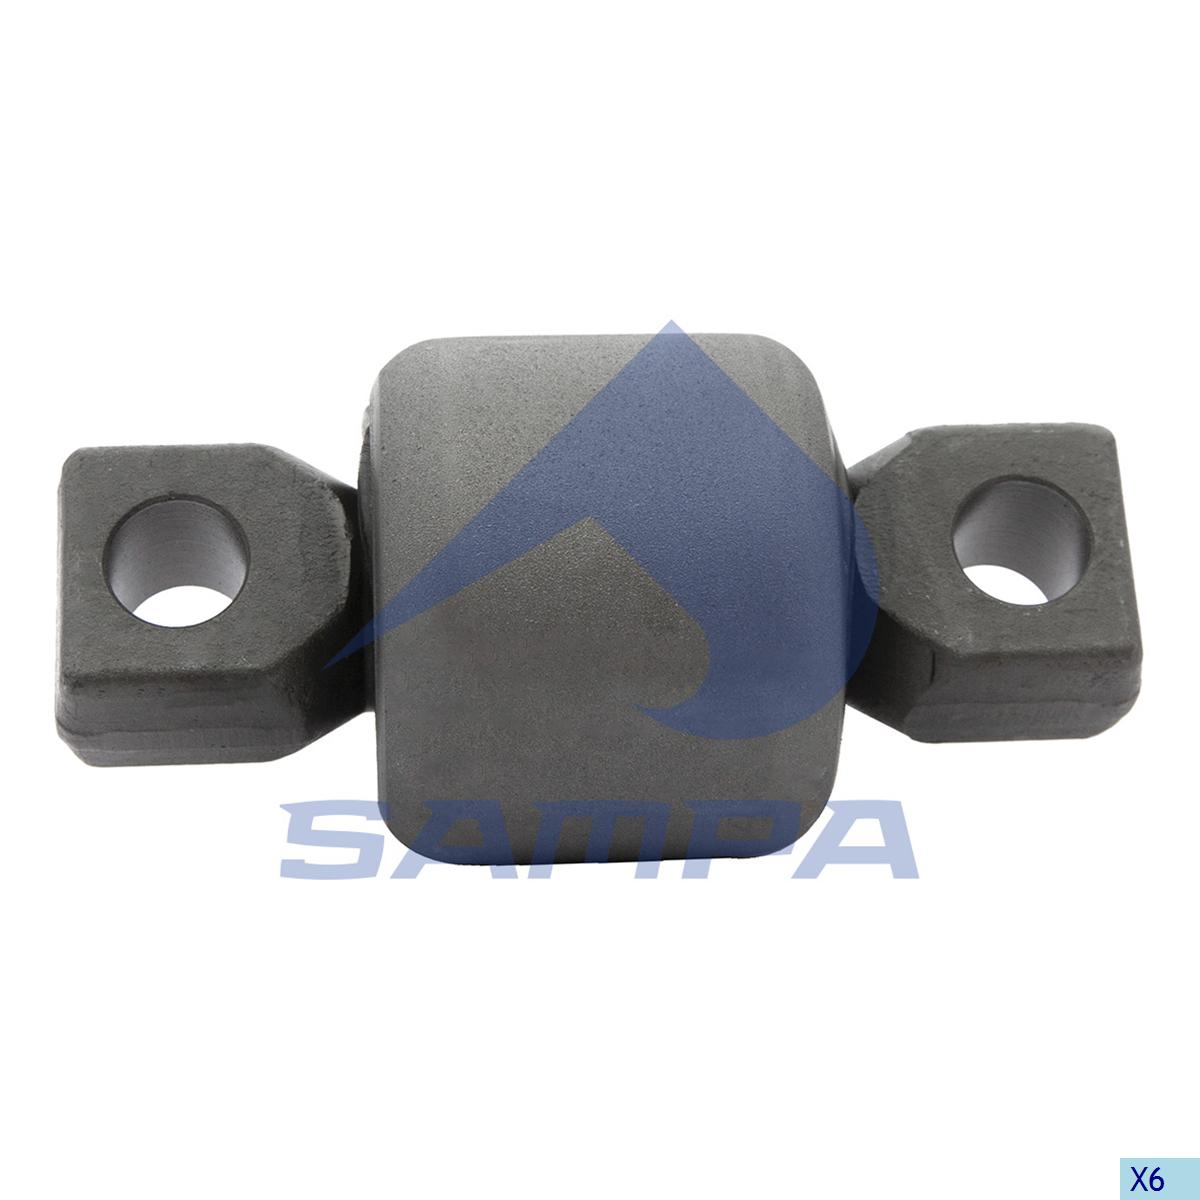 Rubber Bushing, Axle Rod, Kenworth, Suspension